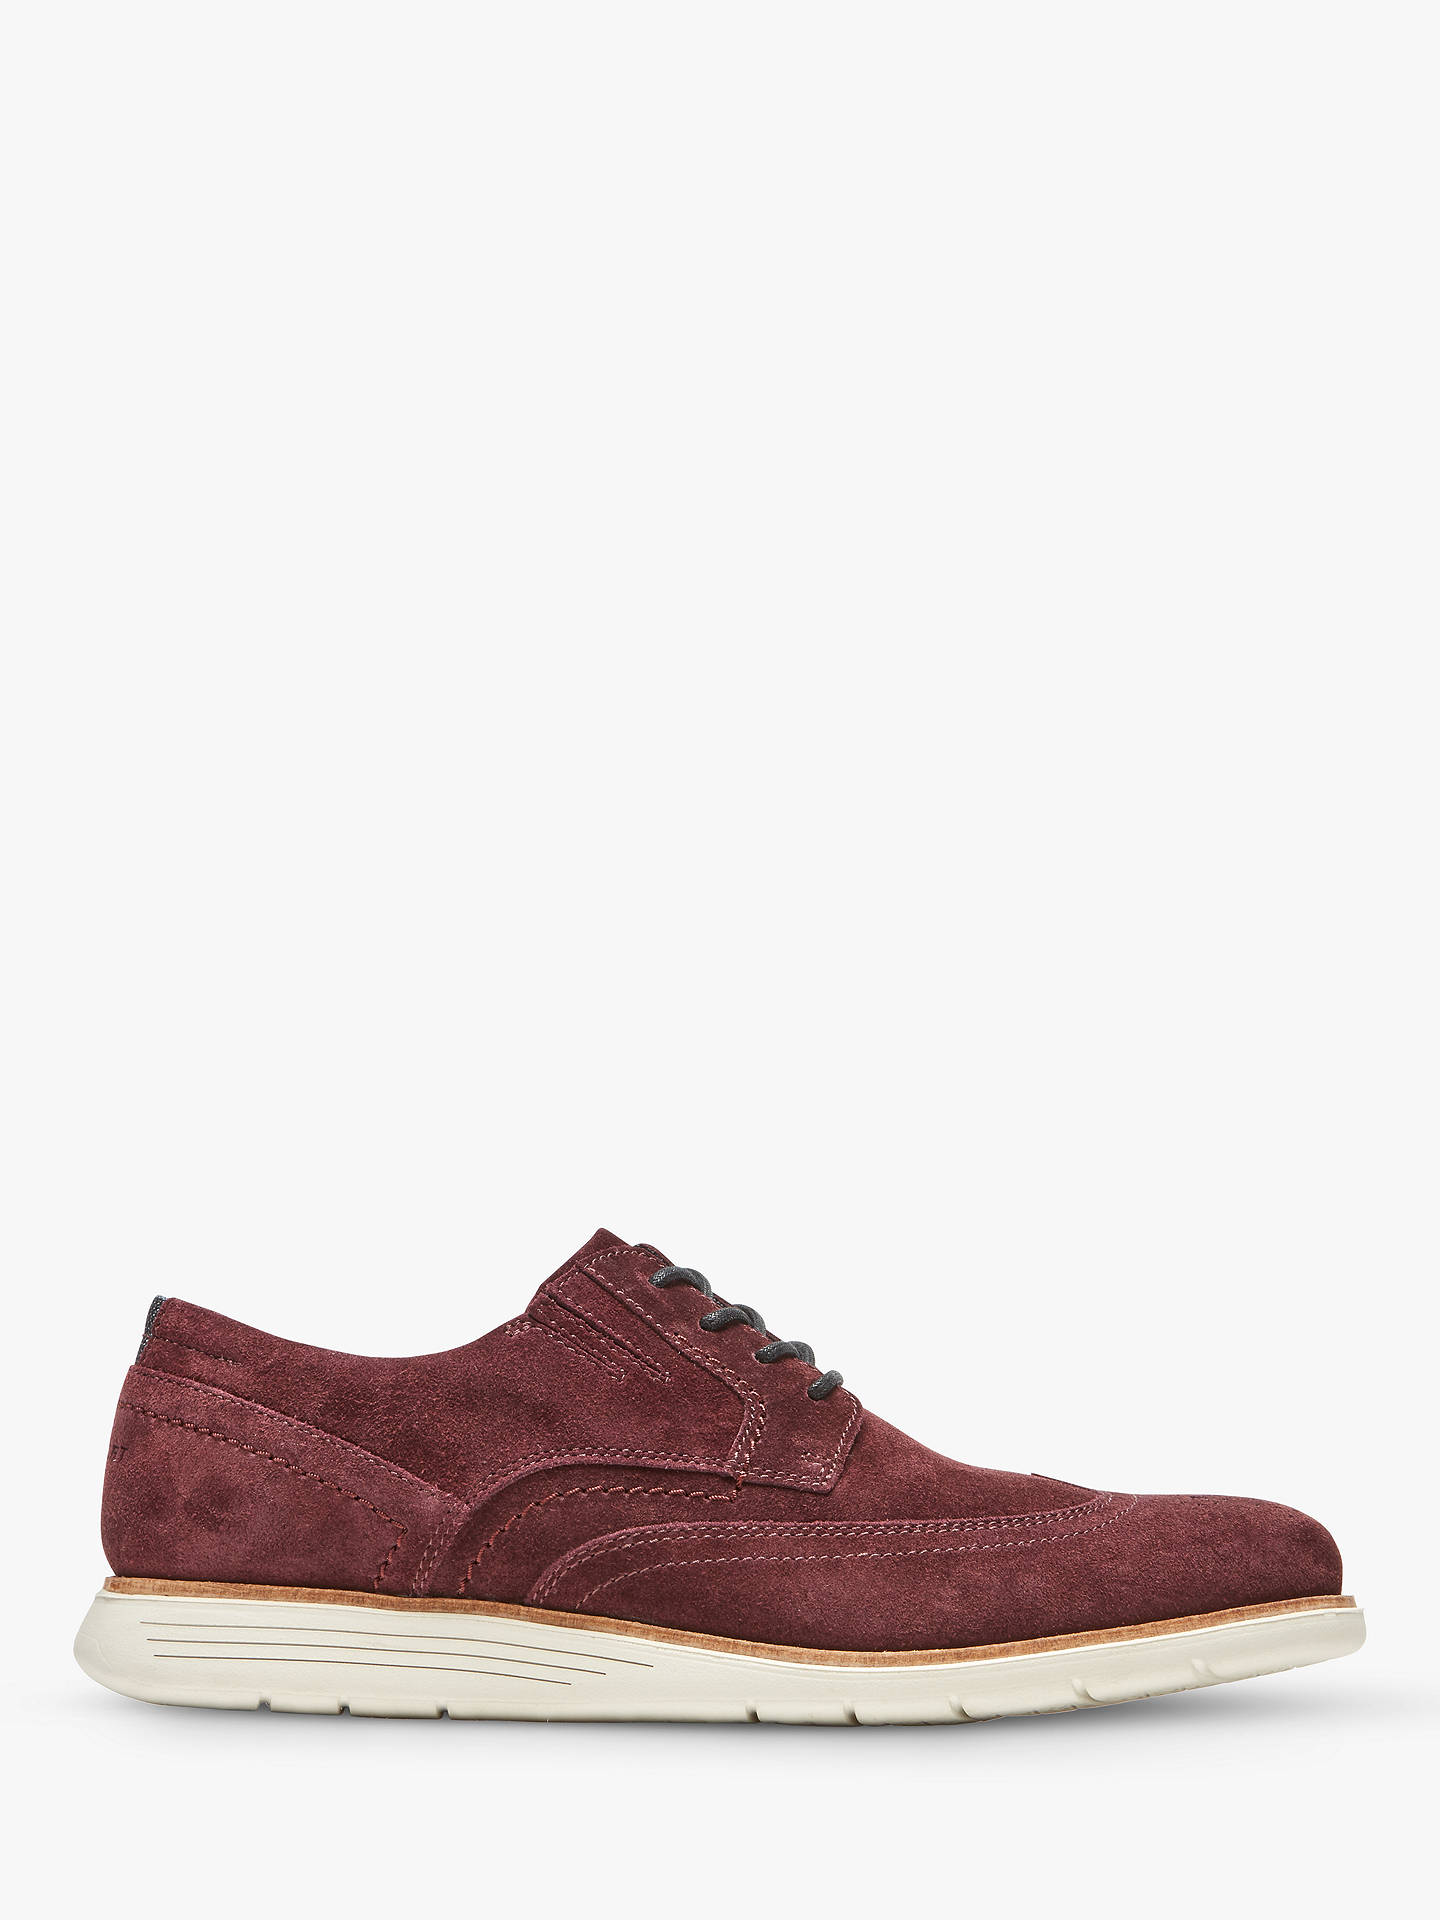 Rockport Total Motion Sports Cf Stead Suede Oxford Shoes